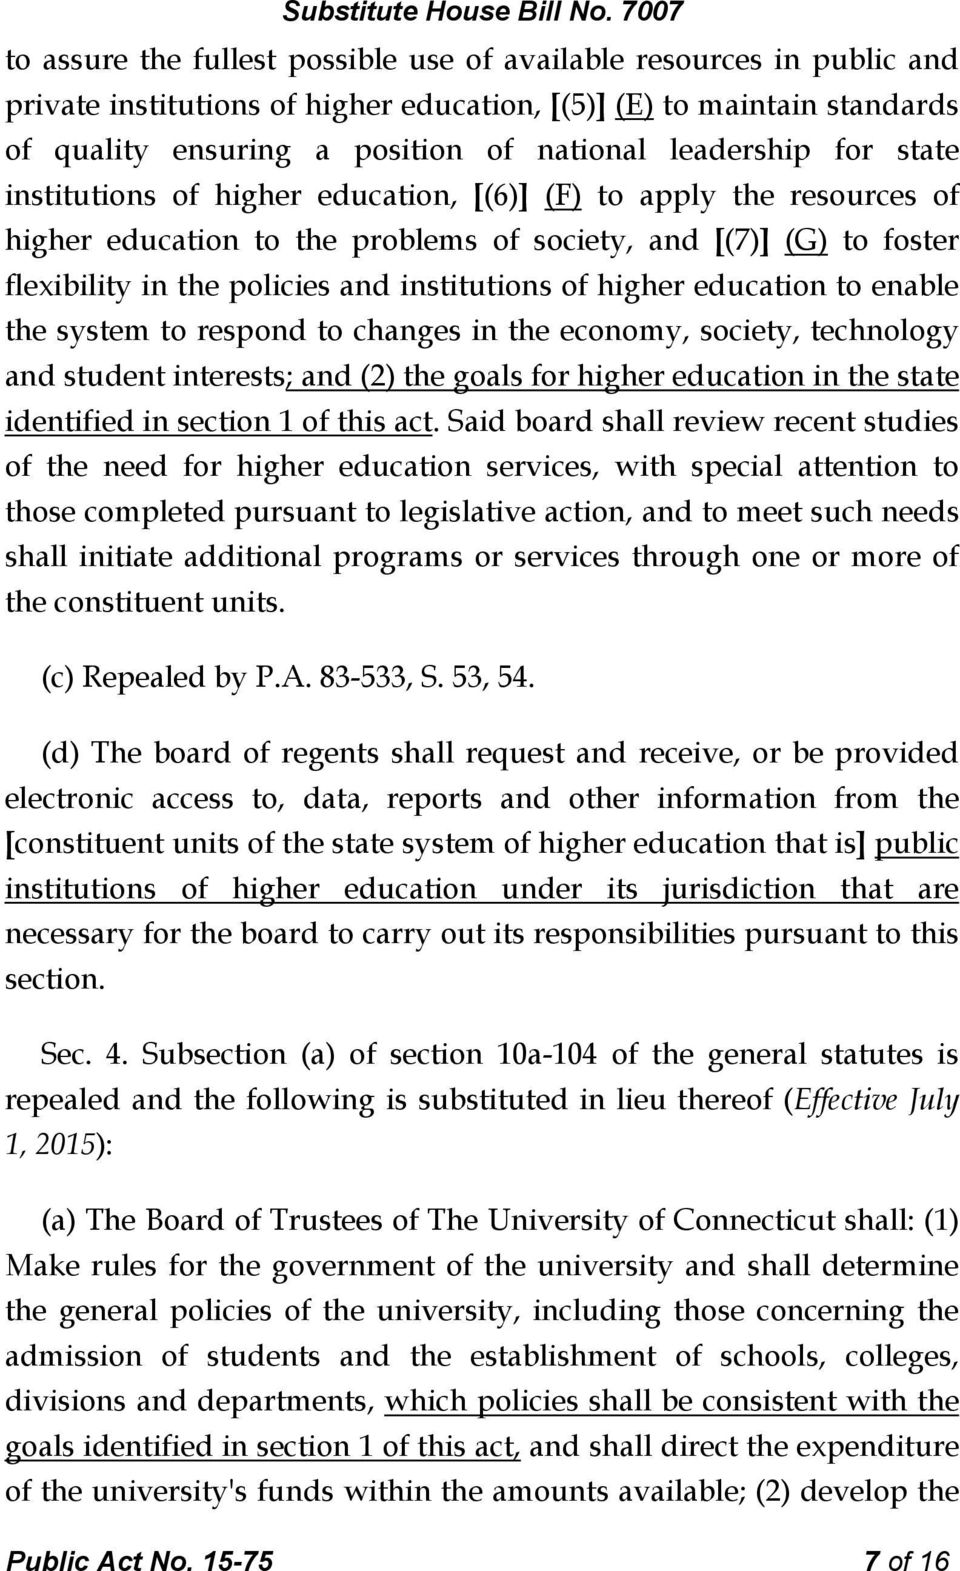 higher education to enable the system to respond to changes in the economy, society, technology and student interests; and (2) the goals for higher education in the state identified in section 1 of